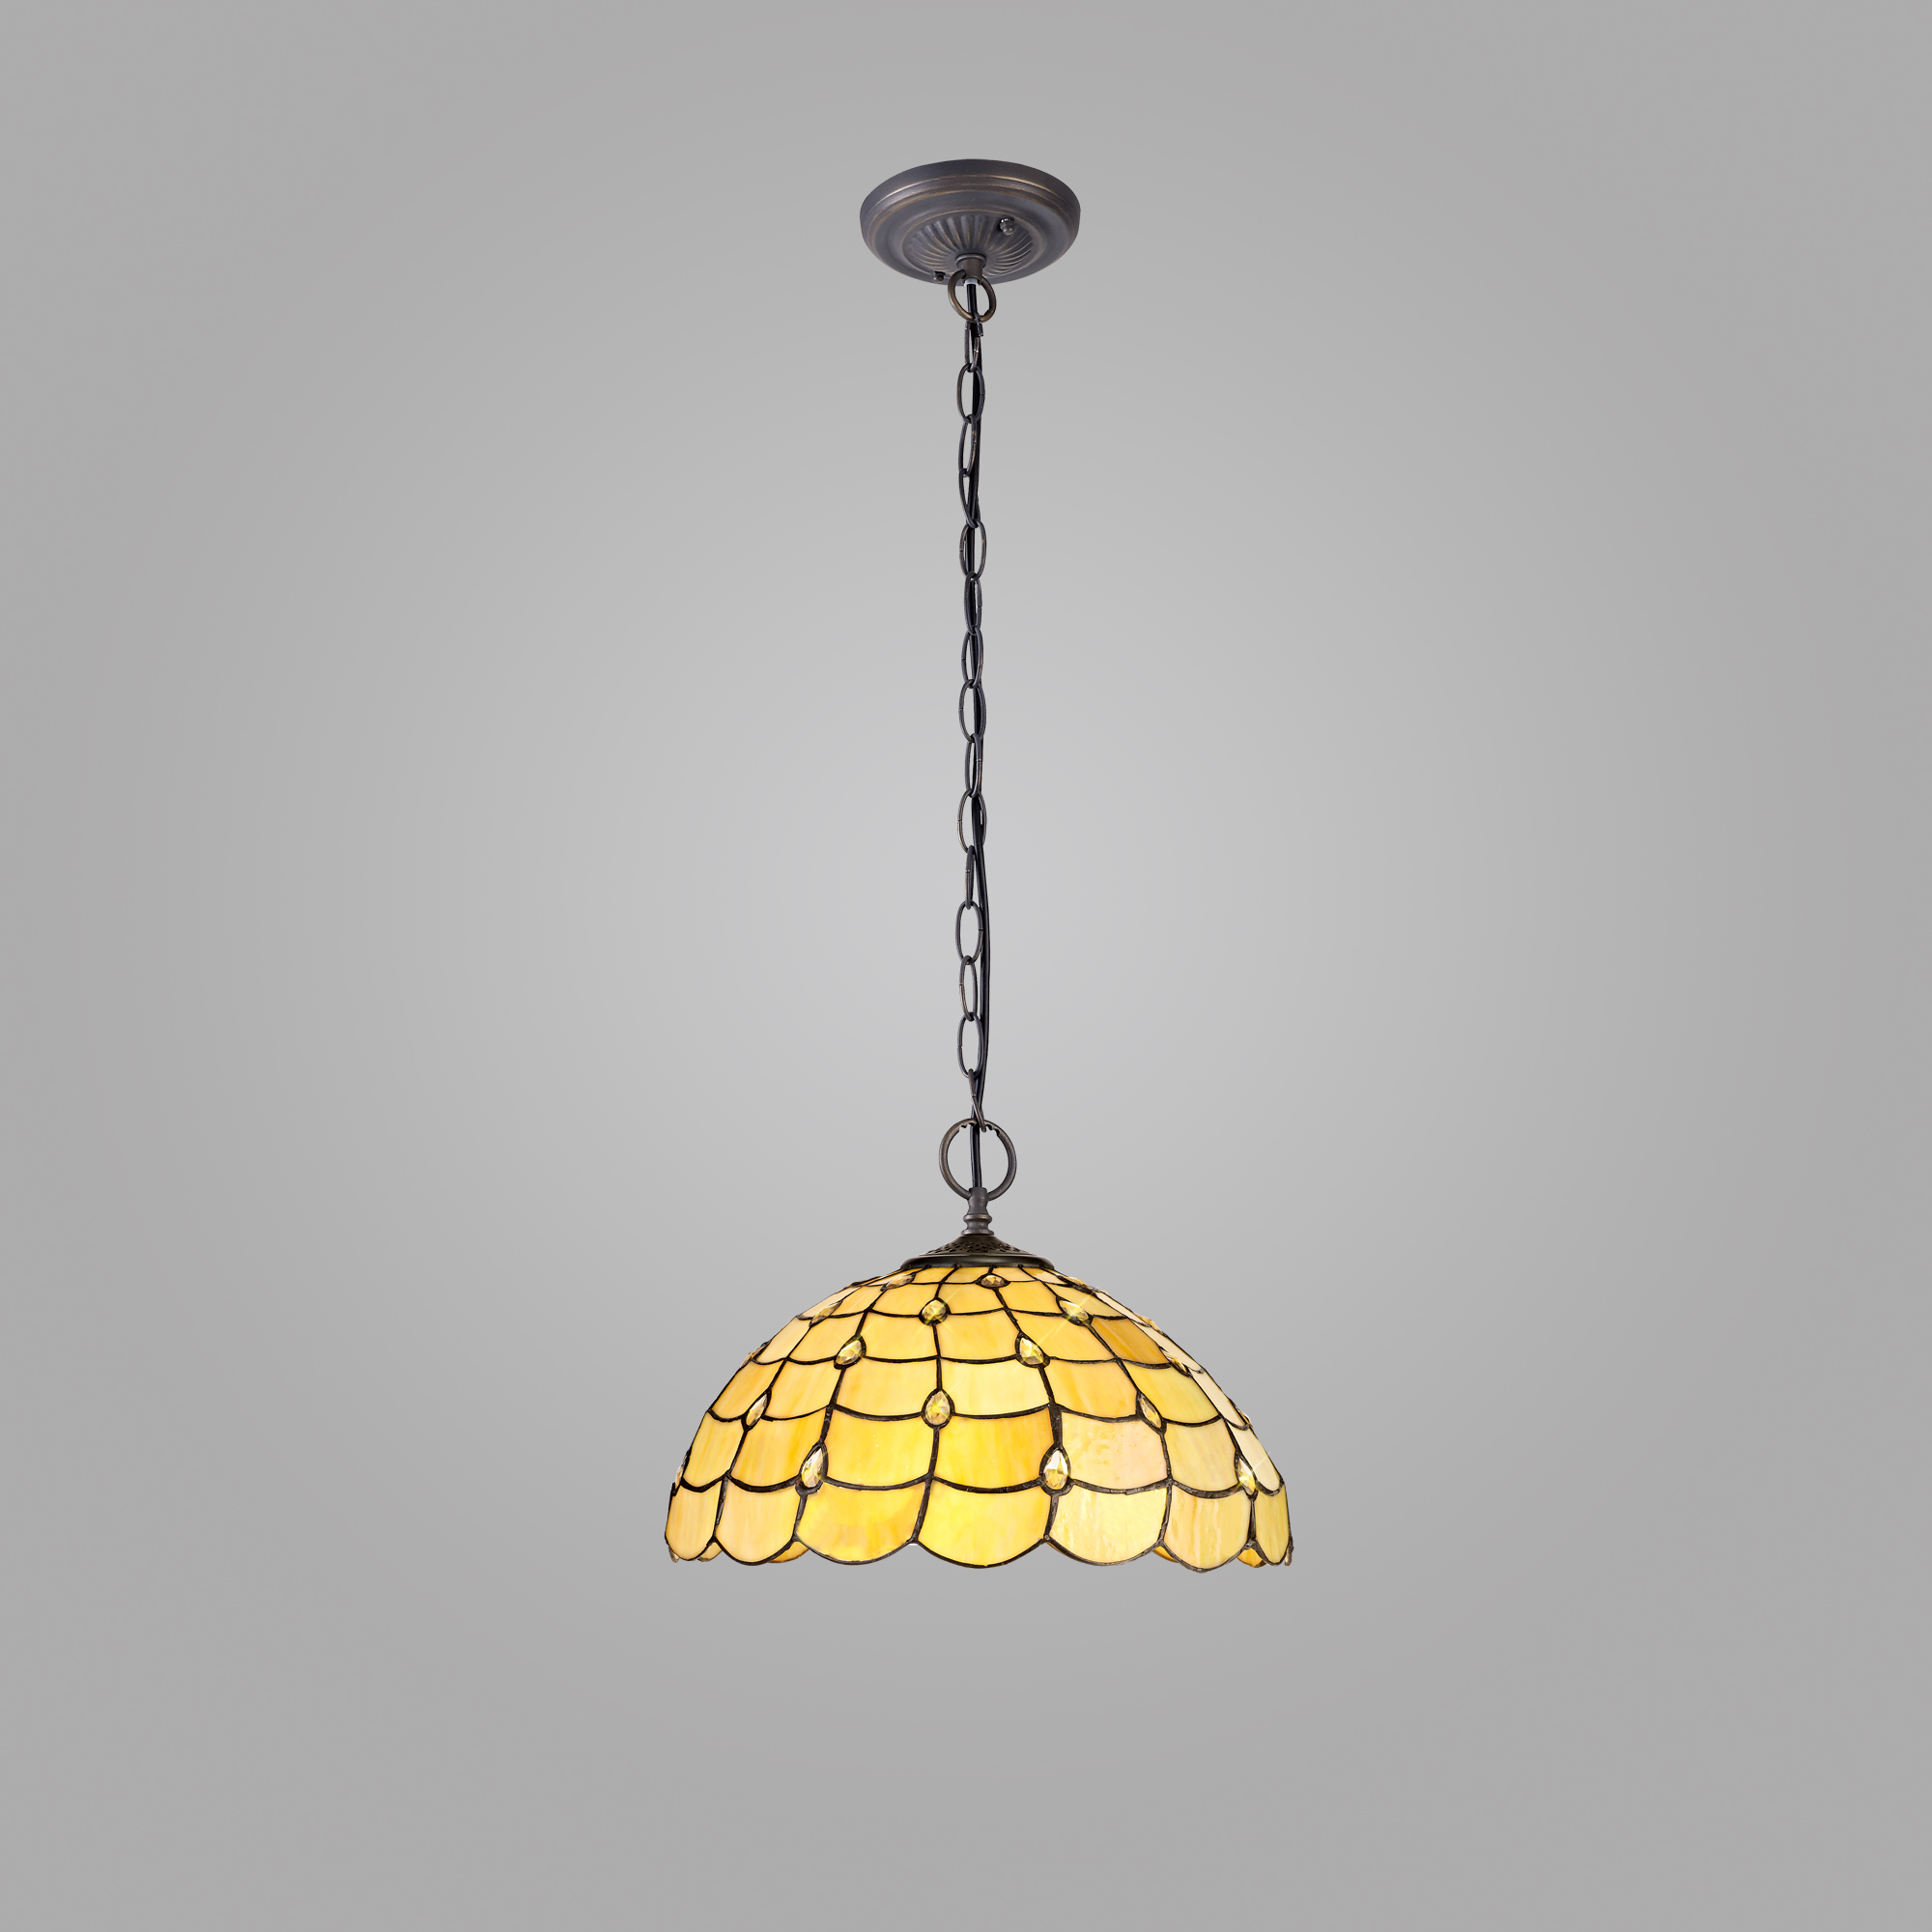 2 Light Downlighter Pendant E27 With 40cm Tiffany Shade, Beige/Clear Crystal/Aged Antique Brass